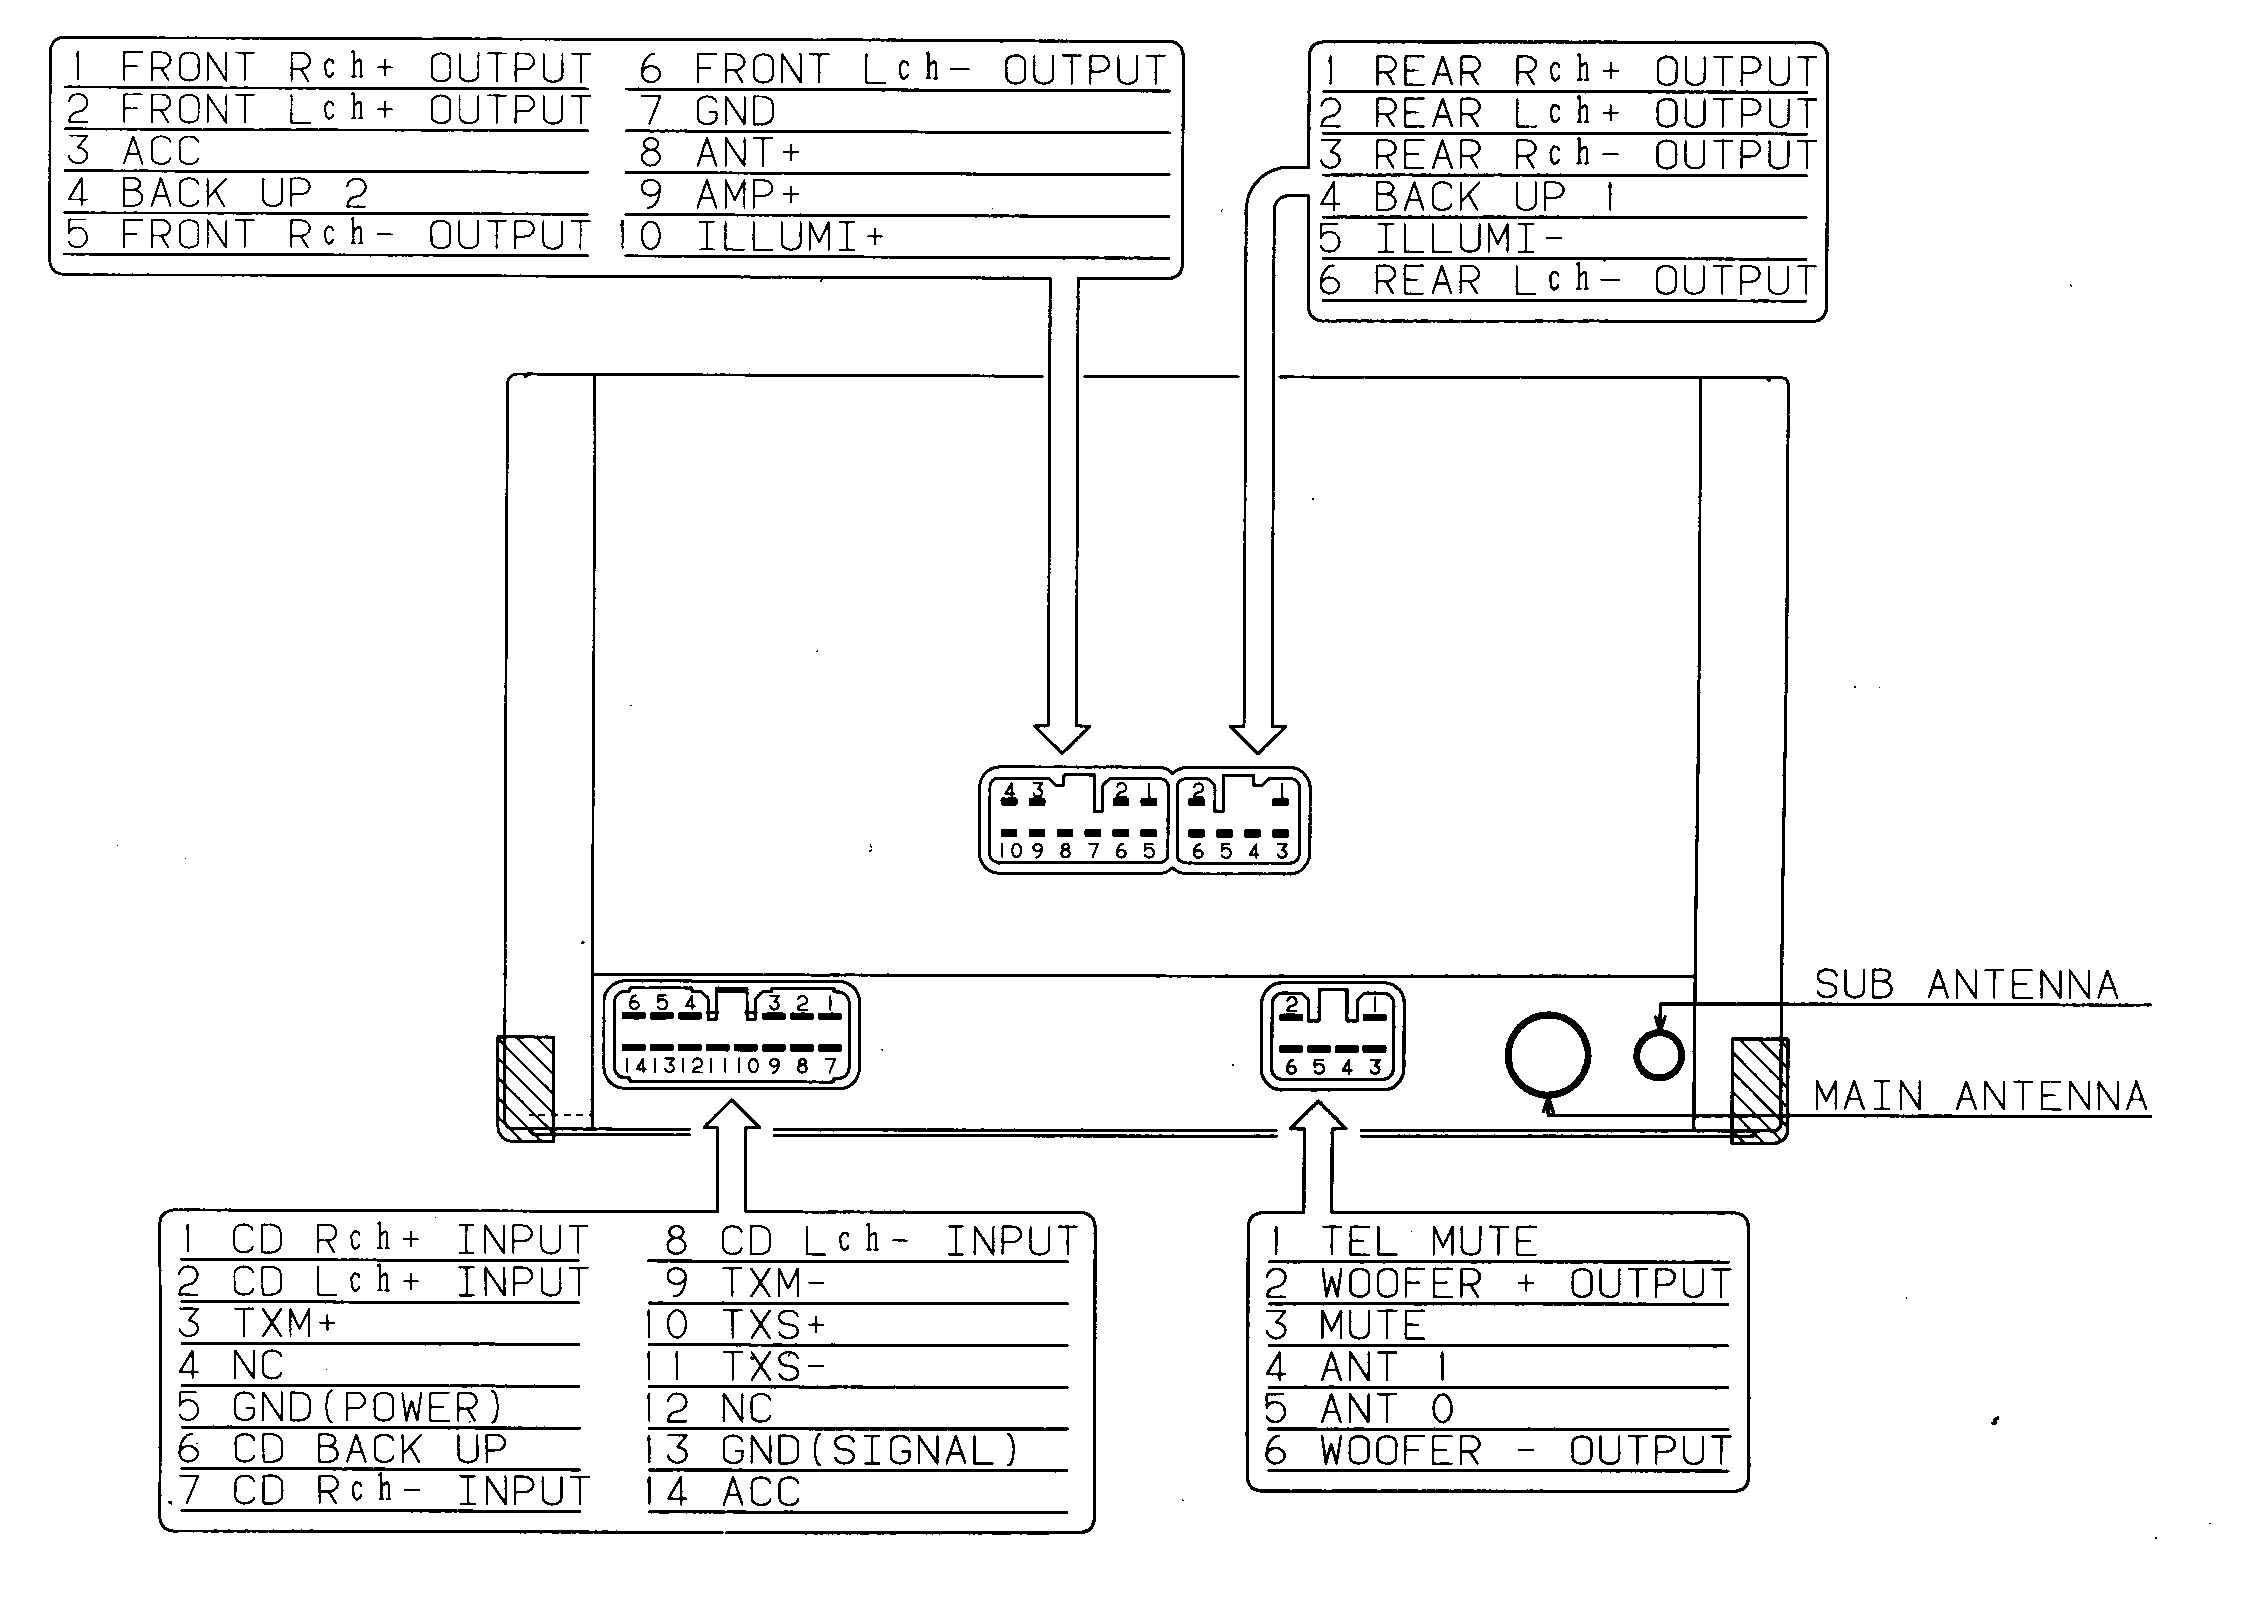 DIAGRAM] Lexus Isf Wiring Diagram FULL Version HD Quality Wiring Diagram -  CRONESMPDF.ARTEMISMAIL.FRcronesmpdf.artemismail.fr